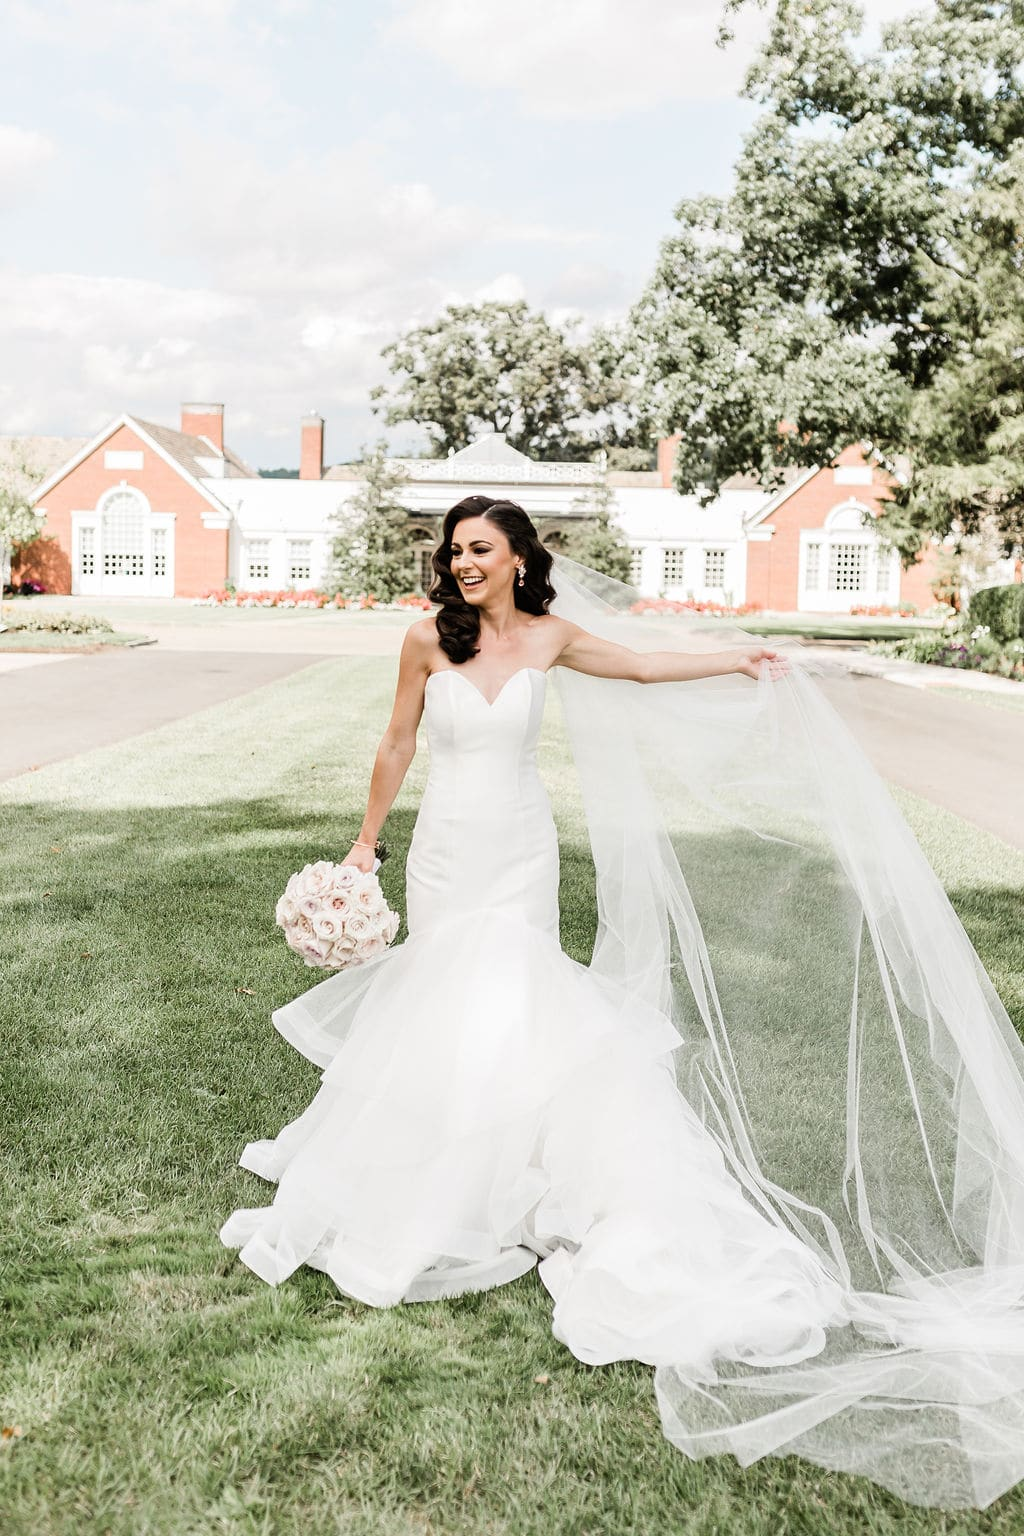 bride smiling holding veil in front of rustic building